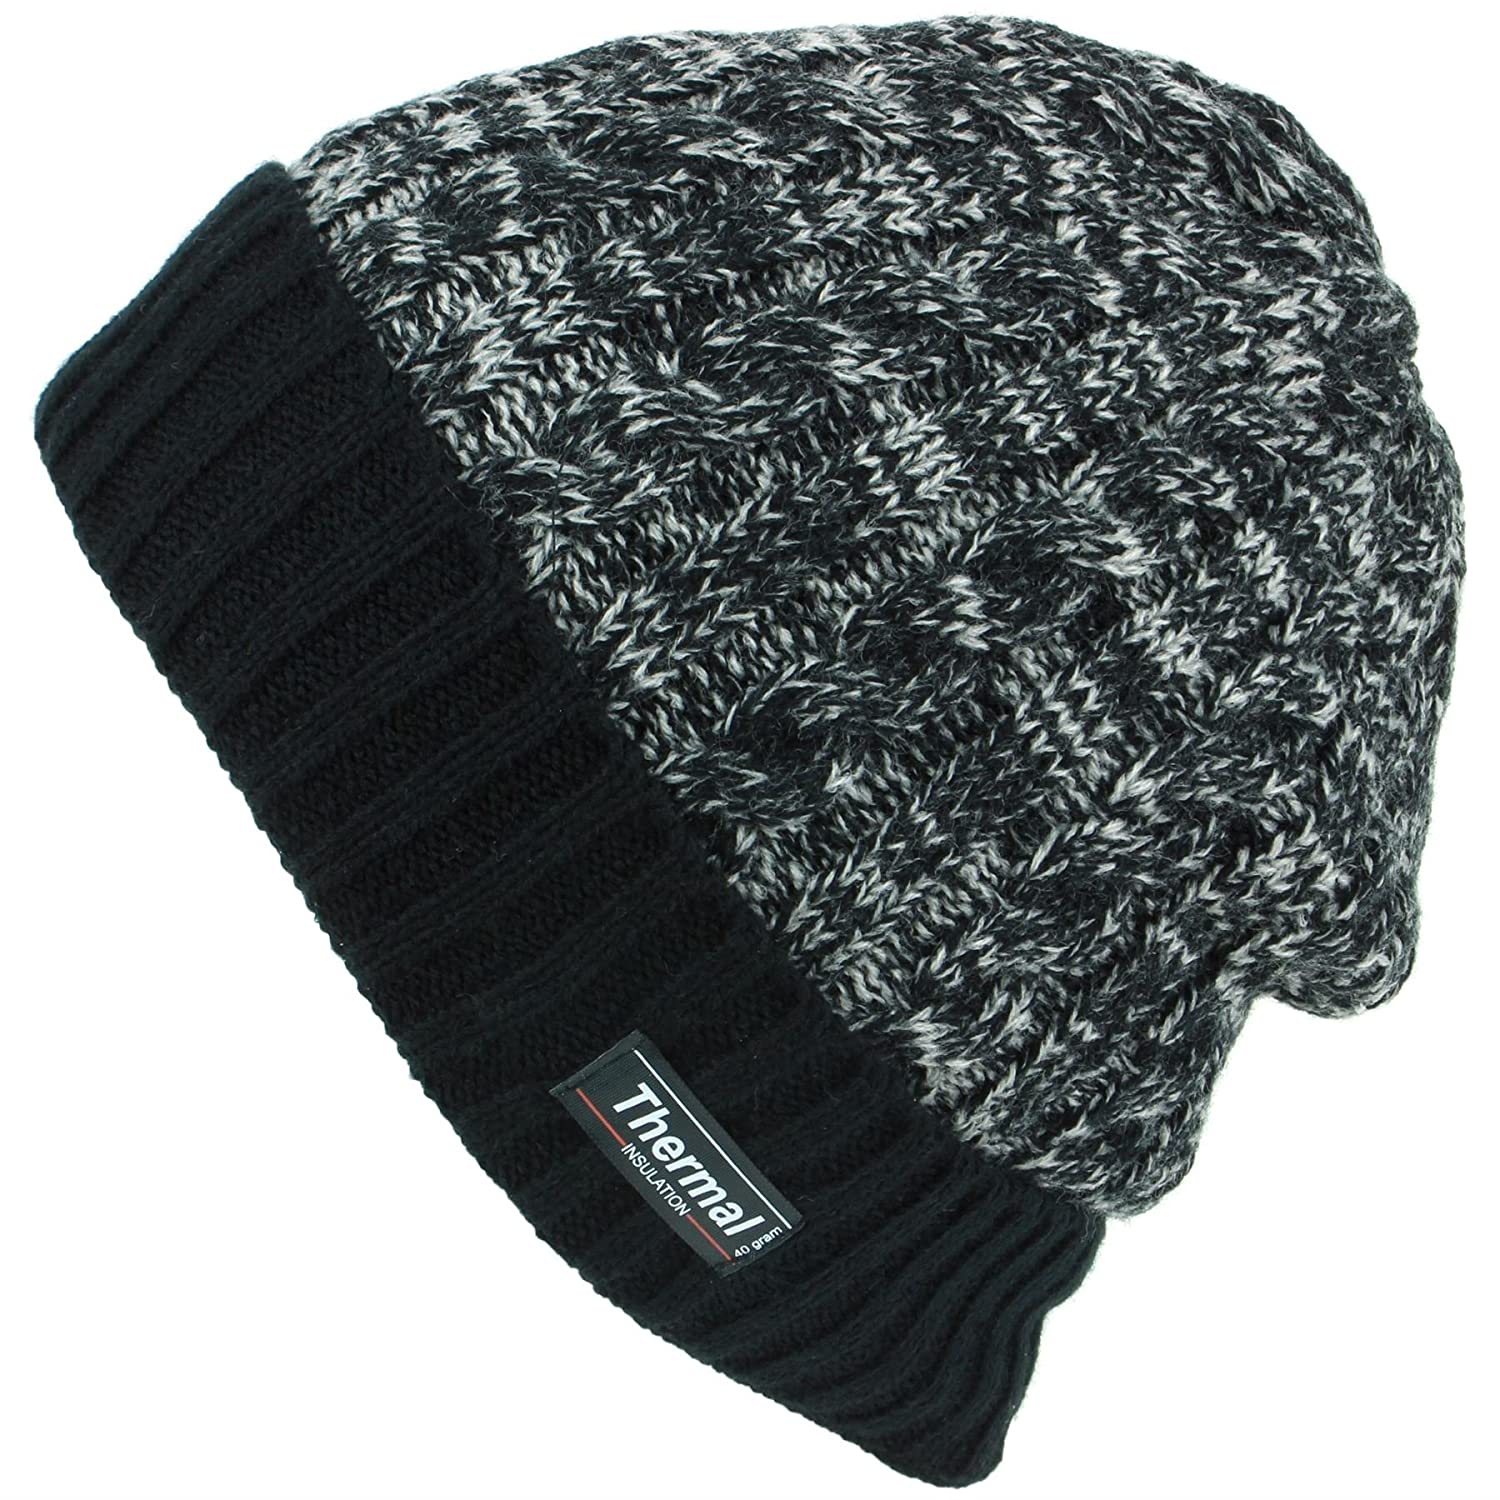 d86b426bb2aee Thinsulate Cable Knit Marl Beanie Hat with Turn-up - Black  Amazon.co.uk   Clothing